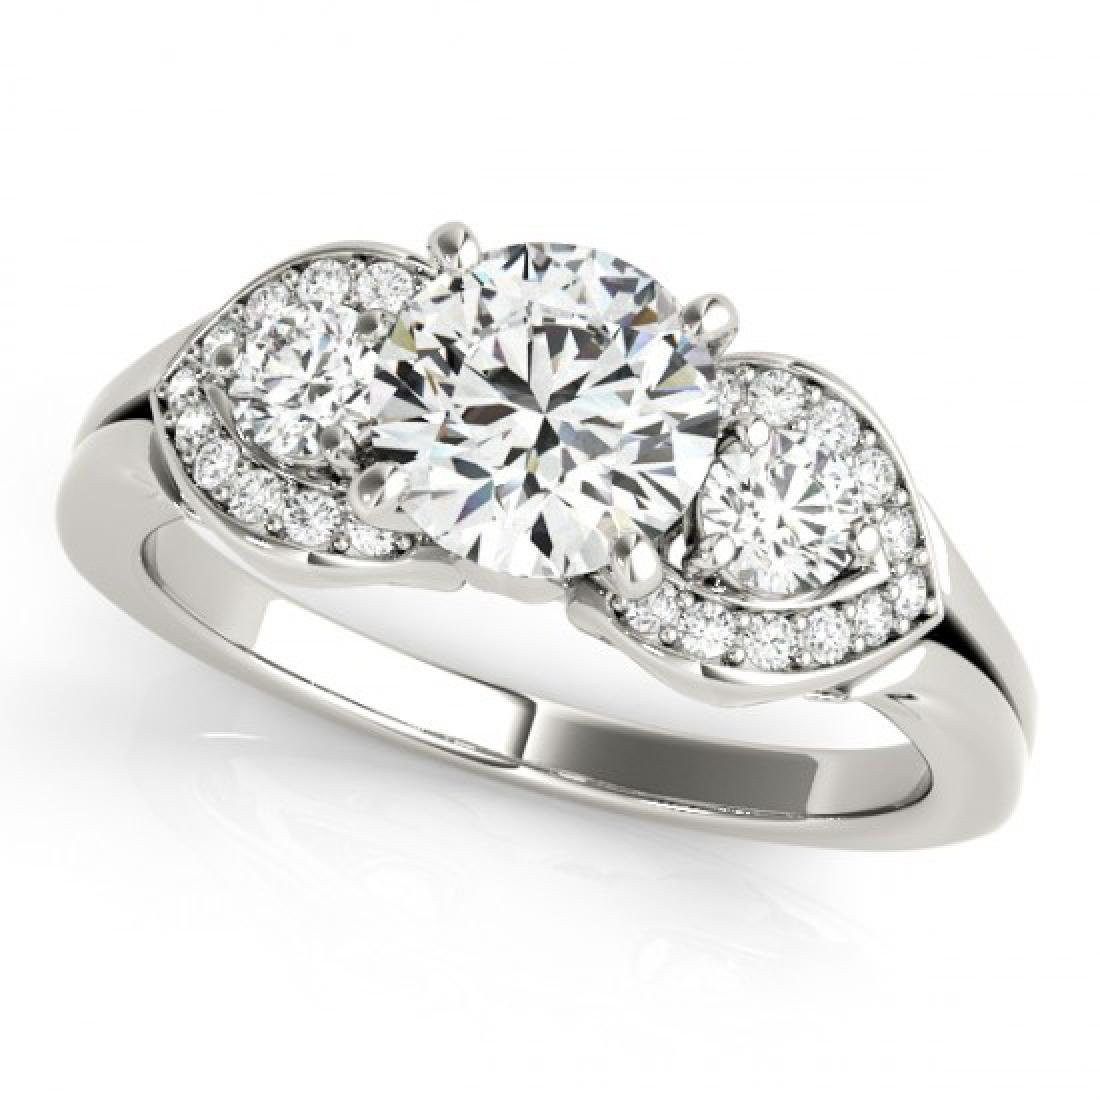 1.2 CTW Certified VS/SI Diamond 3 Stone Ring 14K White